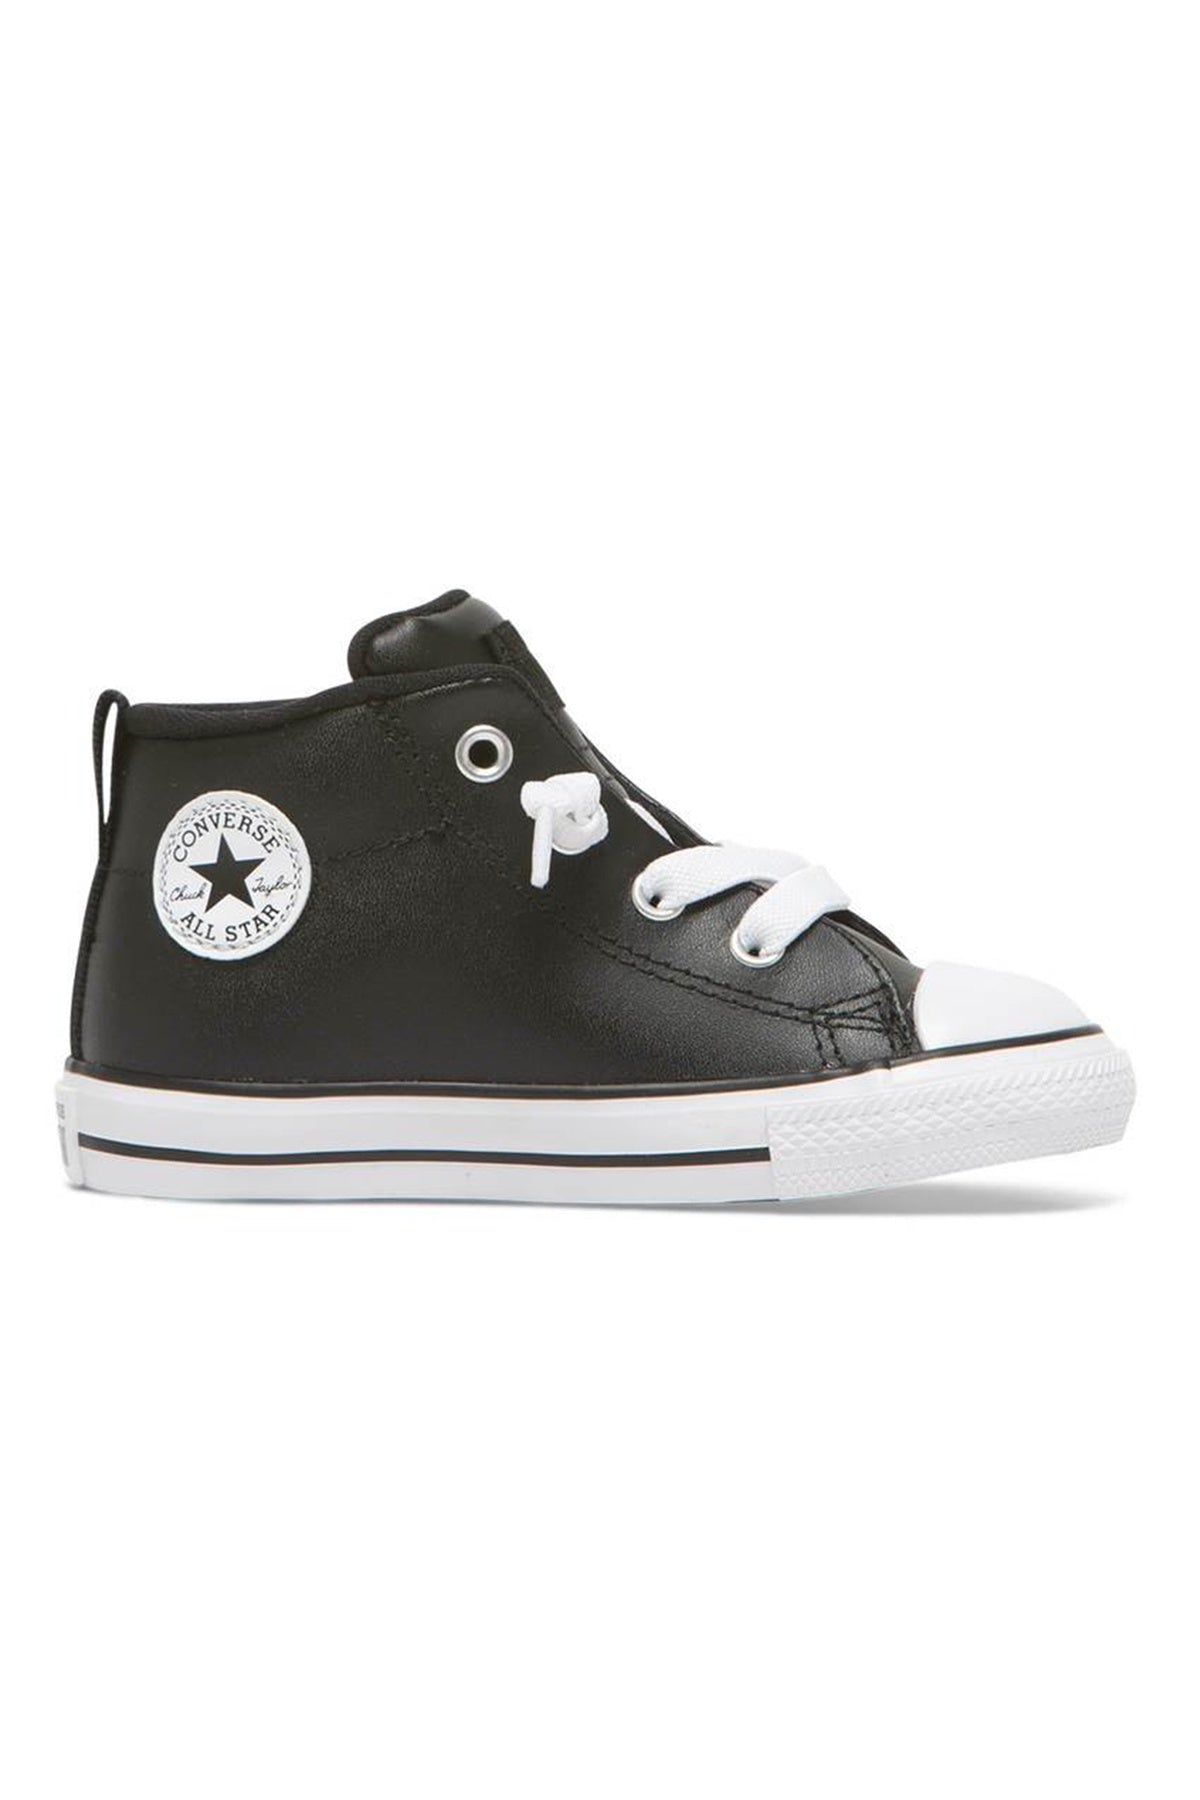 Converse Infant CT Street Mid Black